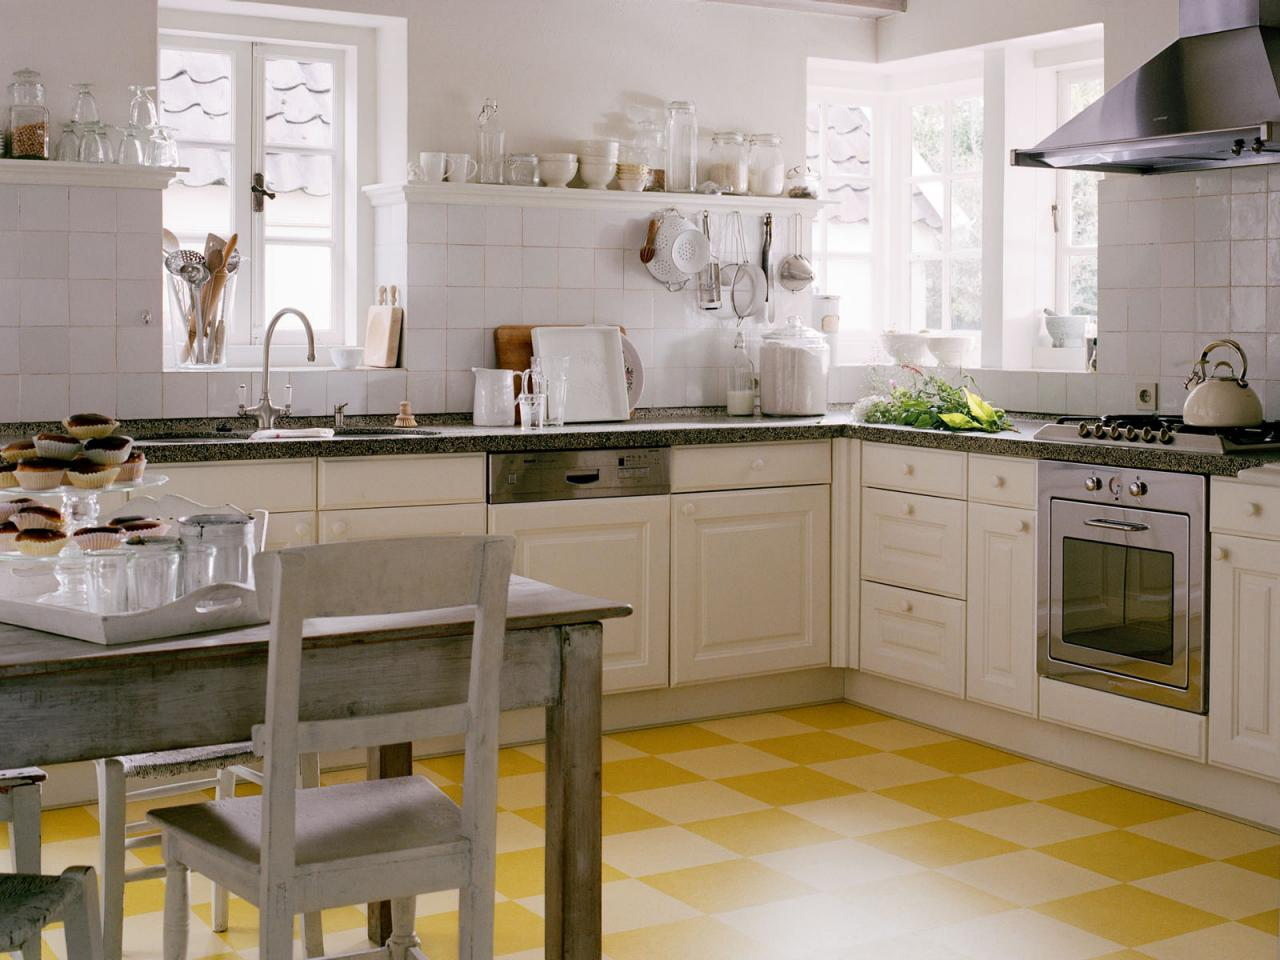 Best Floors For A Kitchen Linoleum Flooring In The Kitchen Hgtv